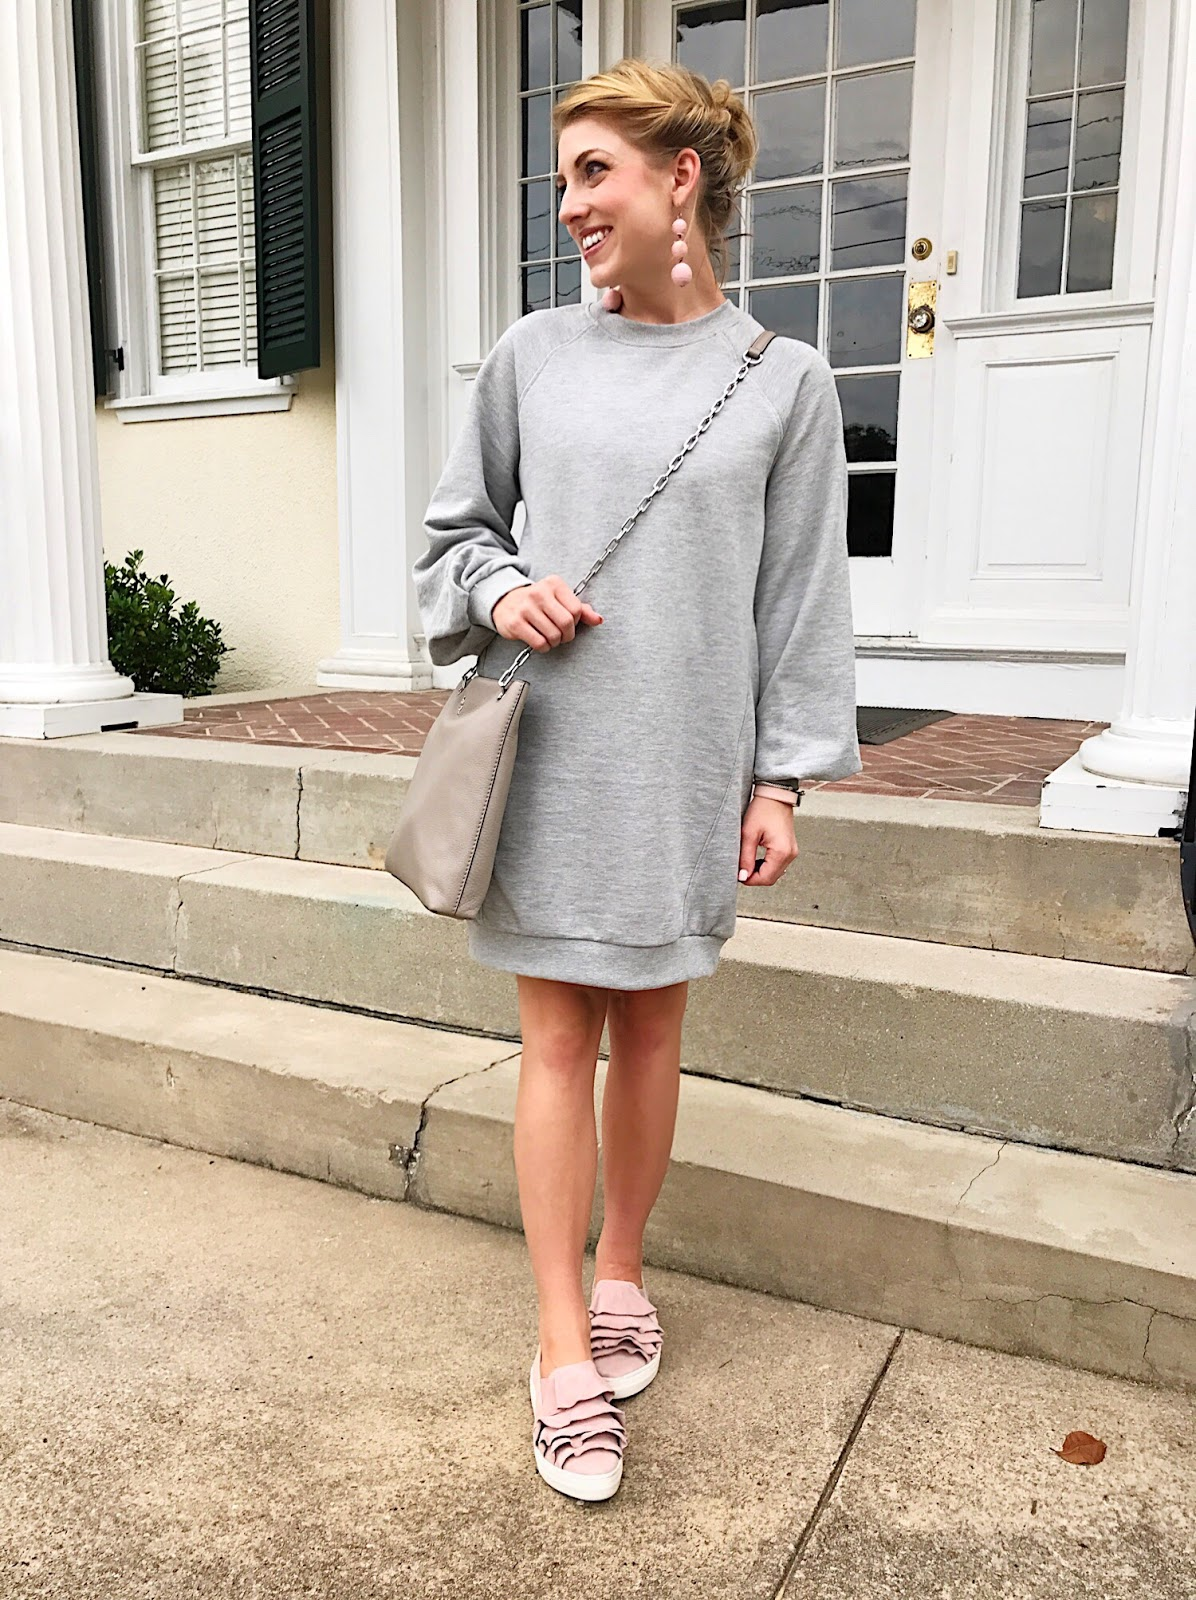 How to style a sweatshirt dress - Click through to see more on Something Delightful Blog.